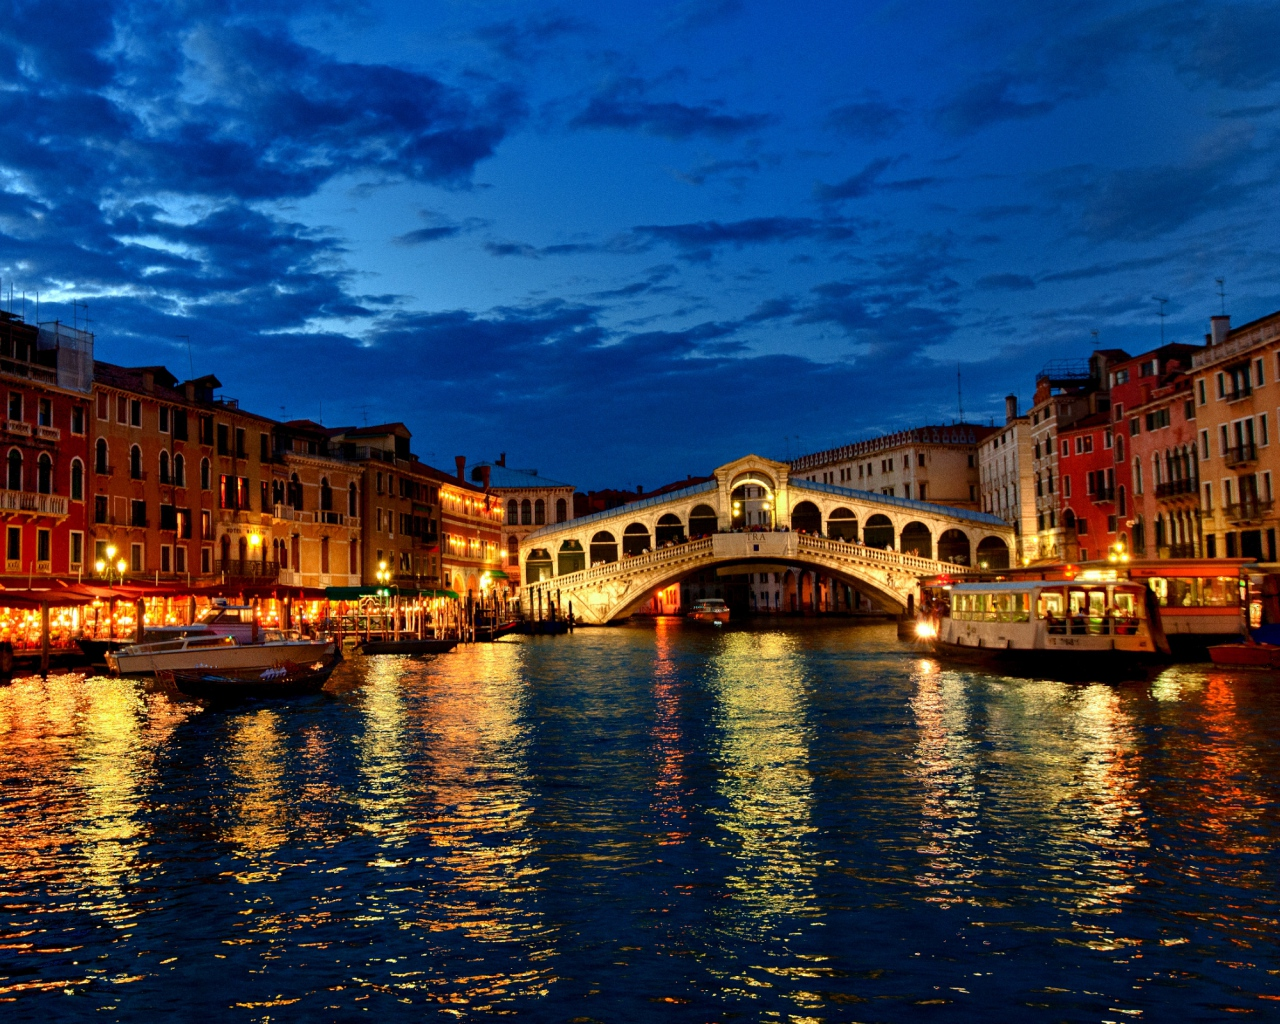 Venice At Night HD Wallpaper Background Images 1280x1024